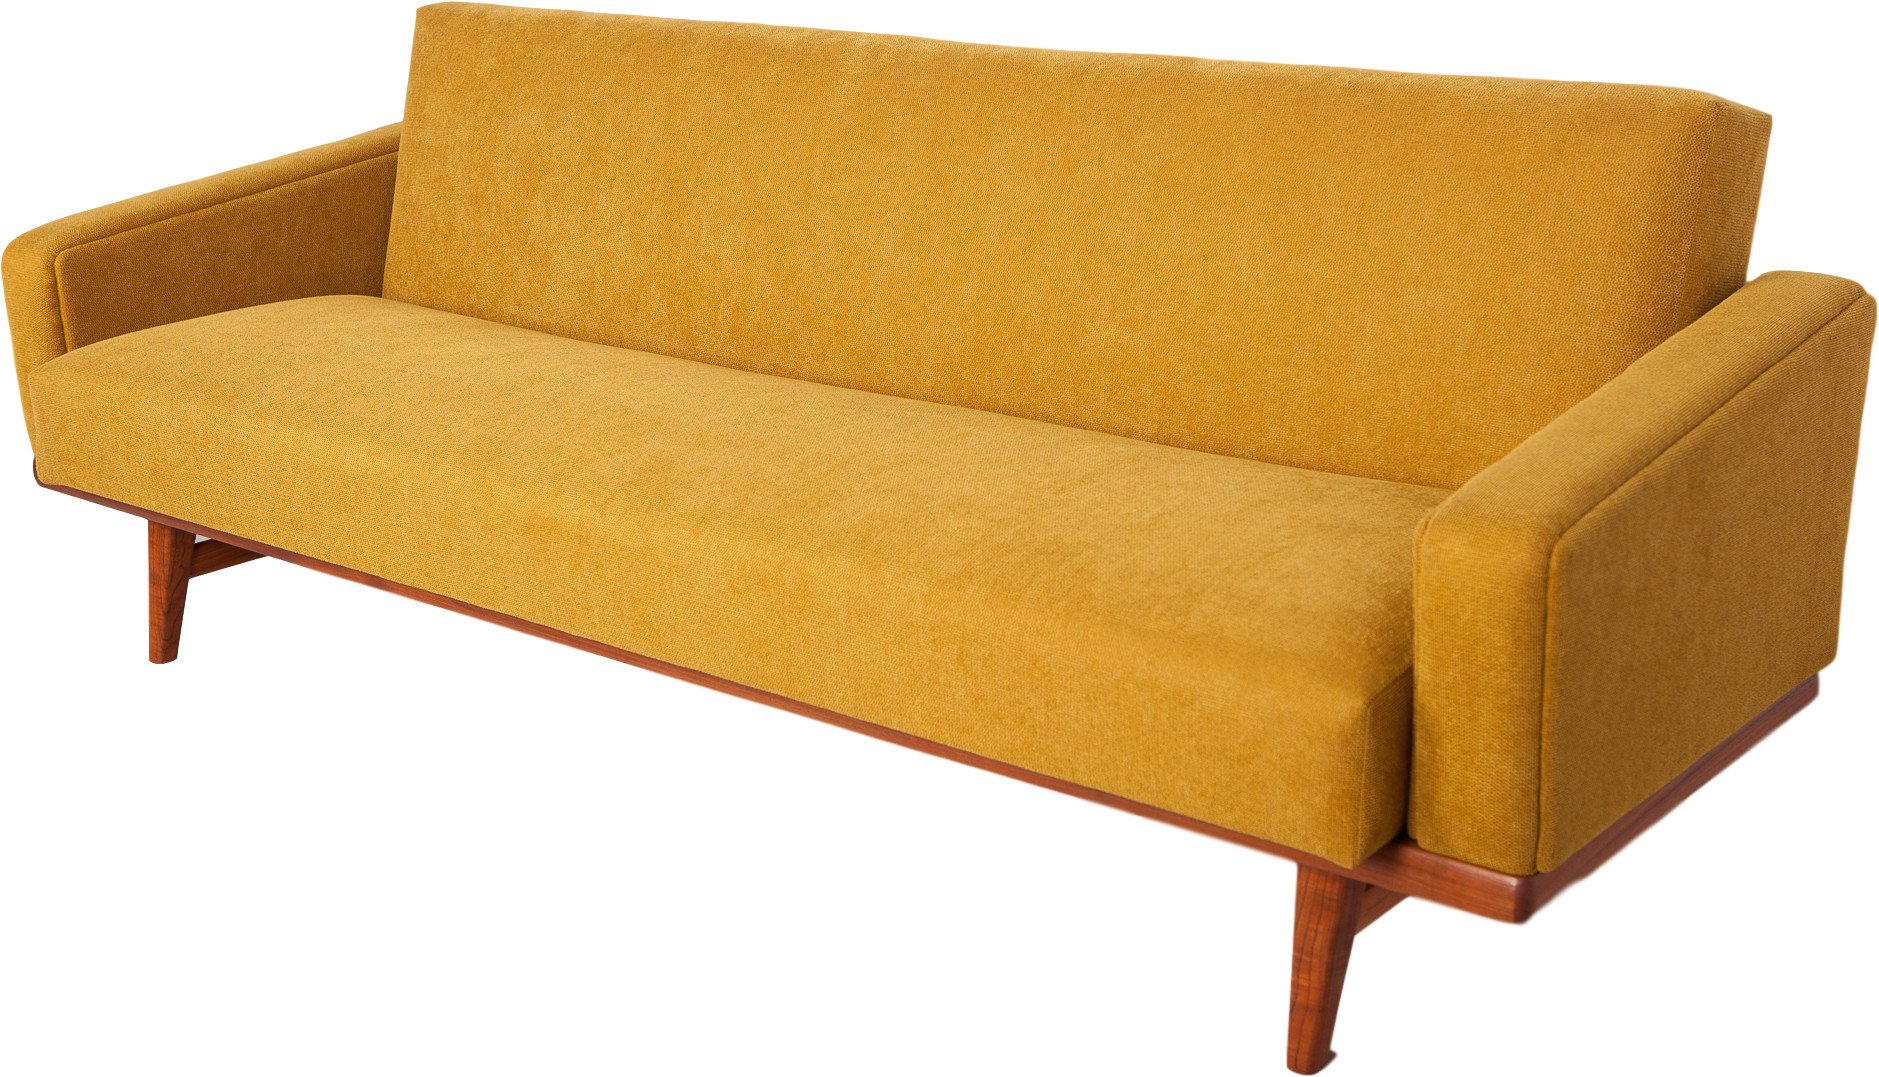 Sofa Bed, Denmark, 1970s